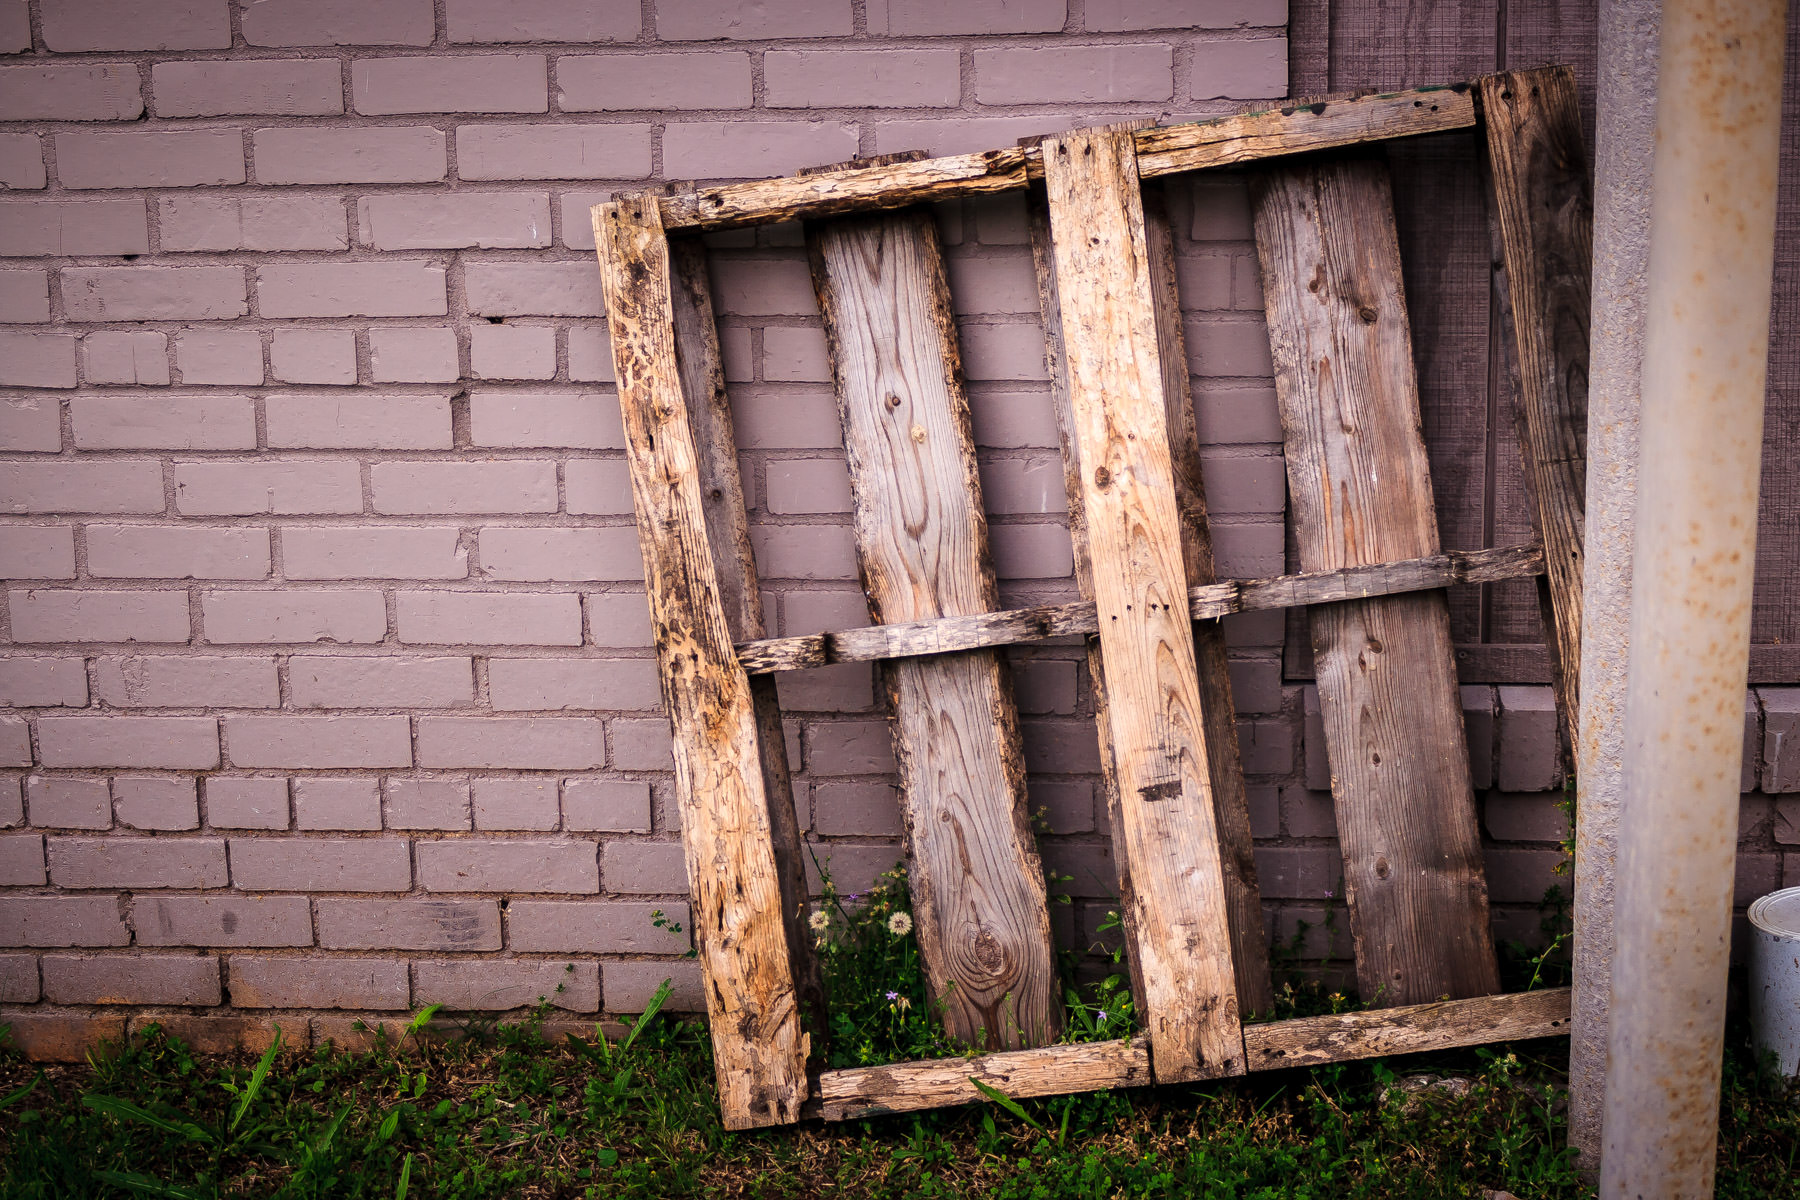 An old pallet, discarded behind a building in Gladewater, Texas.